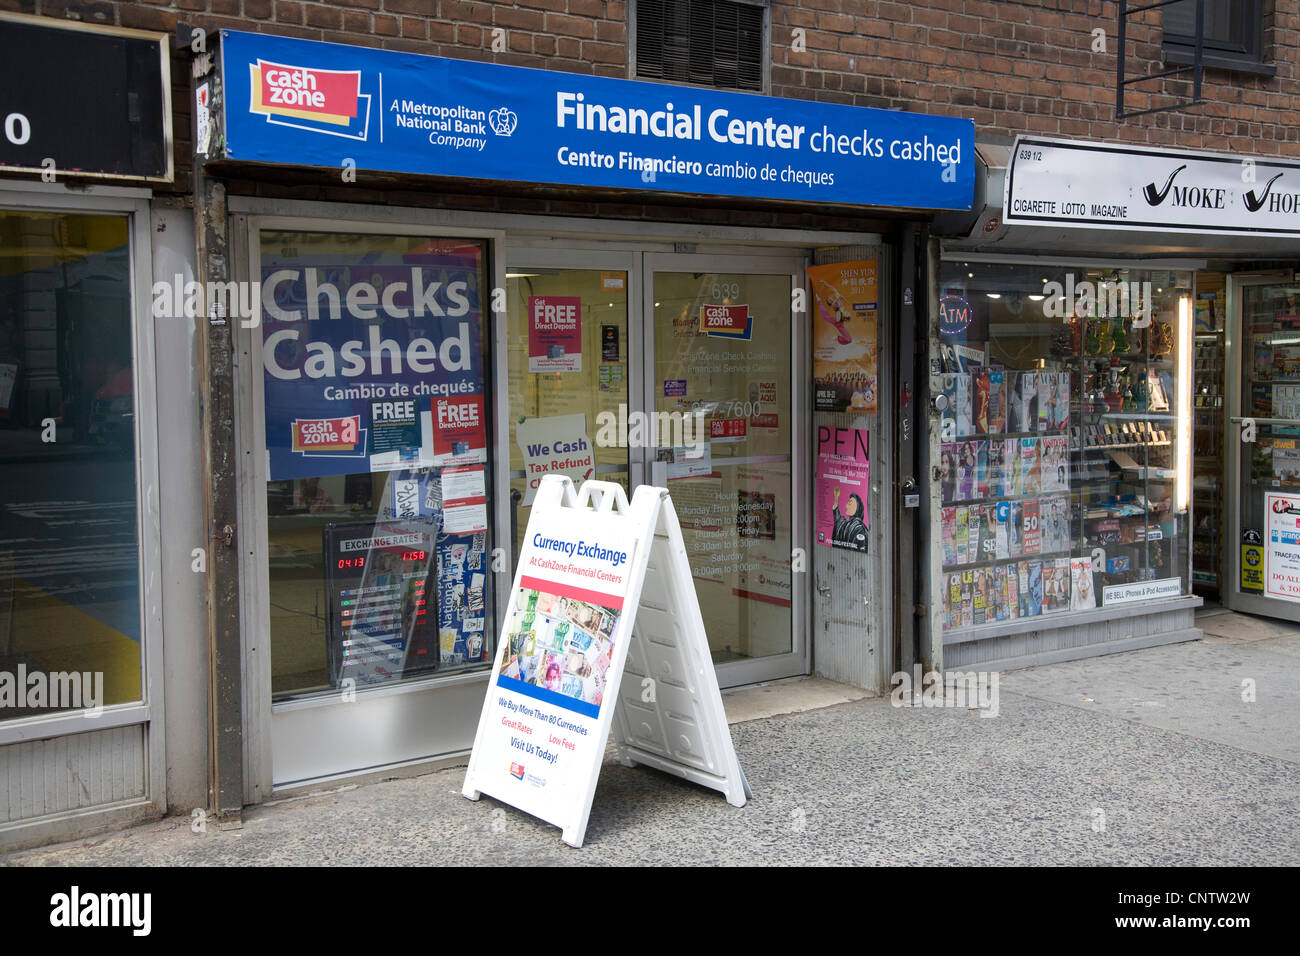 Cashing Check Stock Photos & Cashing Check Stock Images - Alamy